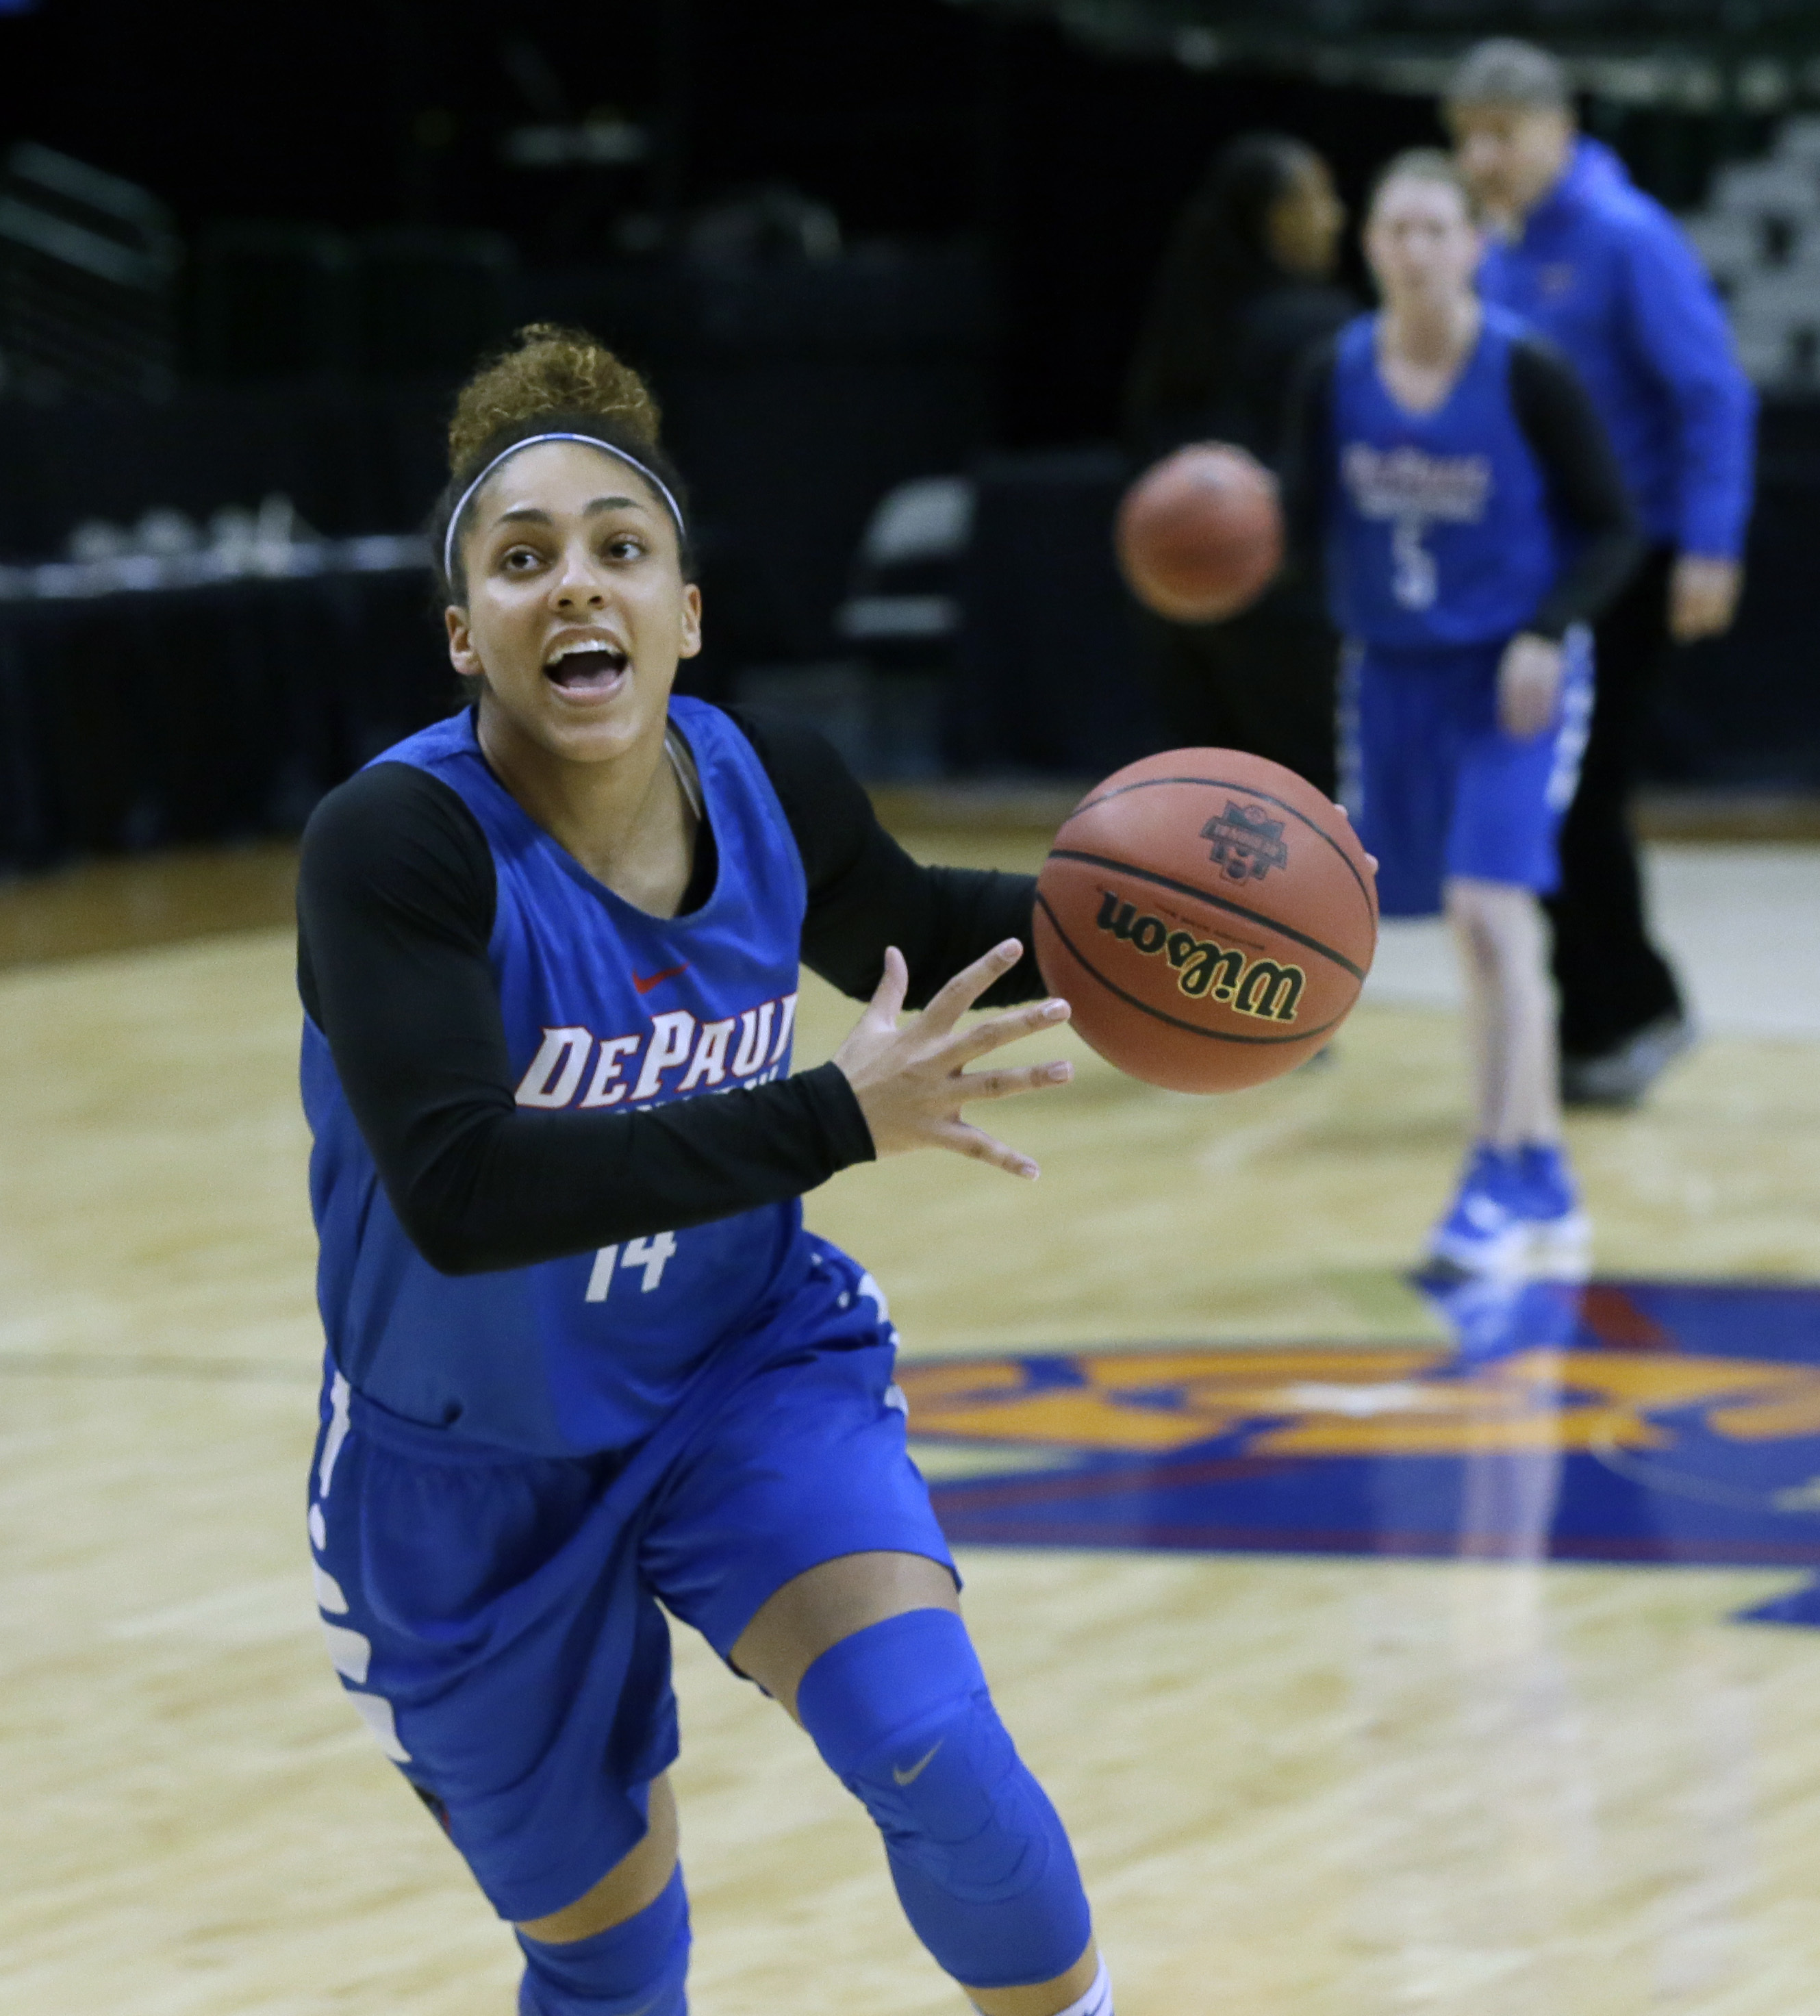 DePaul guard Jessica January (14) drives during a college basketball practice in the regional semifinals of the women's NCAA Tournament Friday, March 25, 2016, in Dallas. Oregon State takes on DePaul on Saturday. (AP Photo/LM Otero)